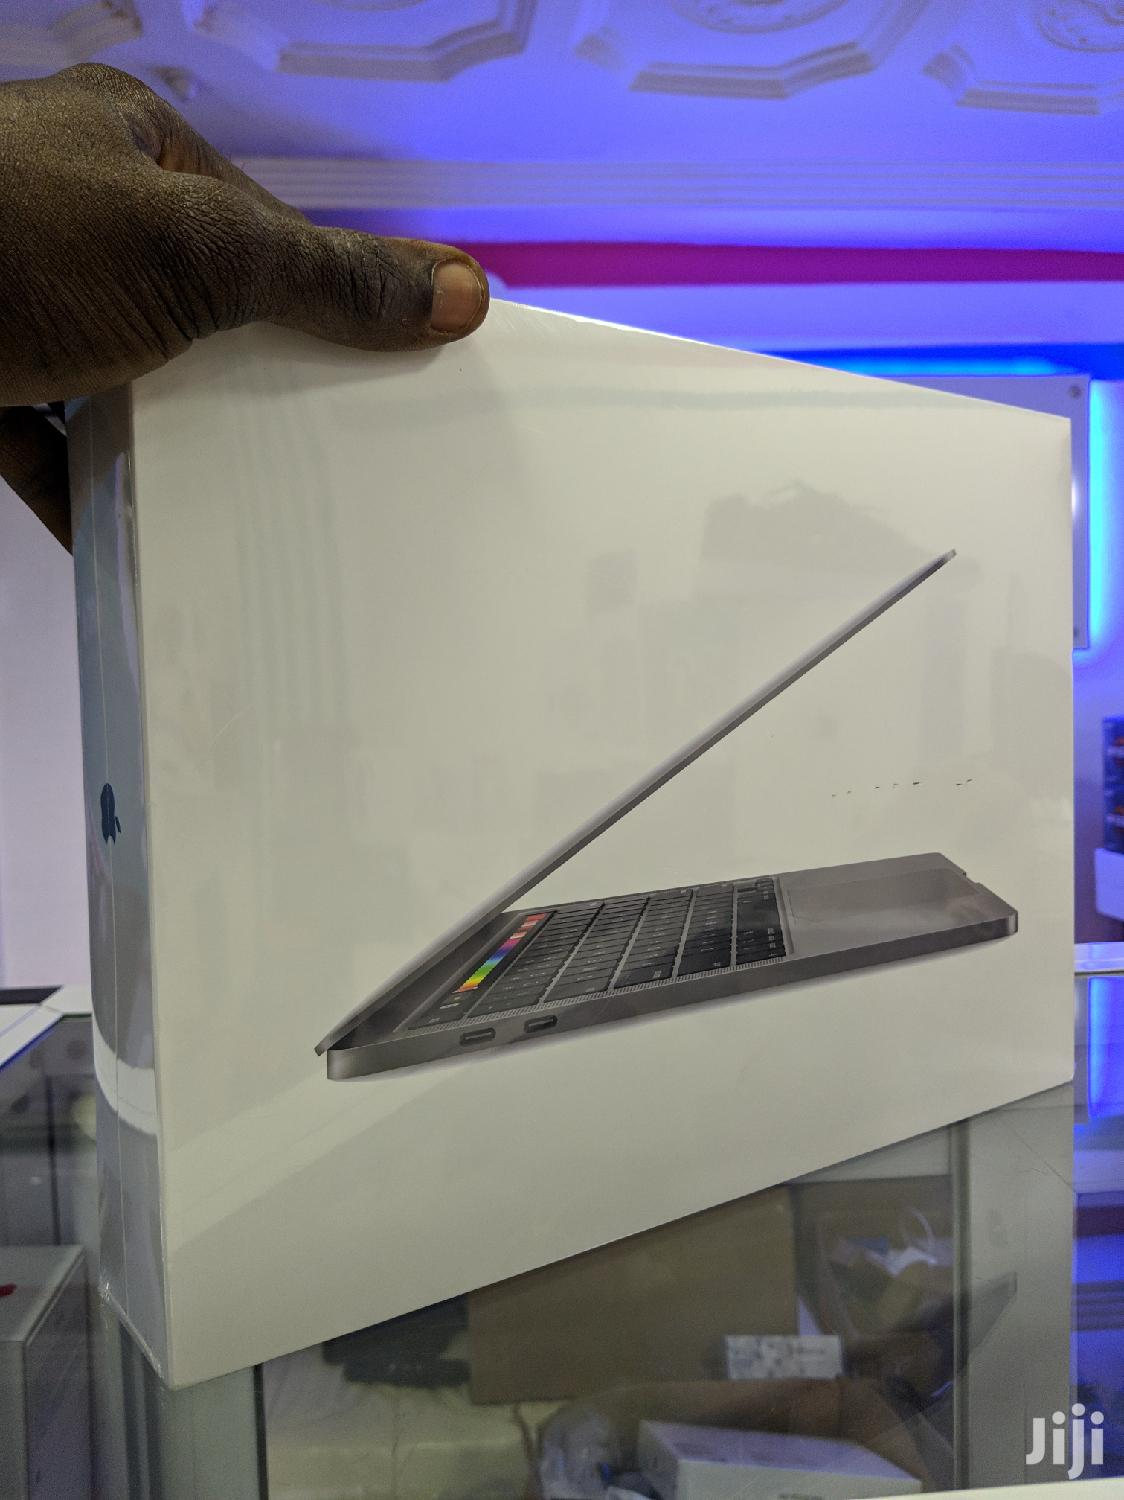 New Laptop Apple MacBook Pro 8GB Intel Core i5 SSD 256GB | Laptops & Computers for sale in Darkuman, Greater Accra, Ghana